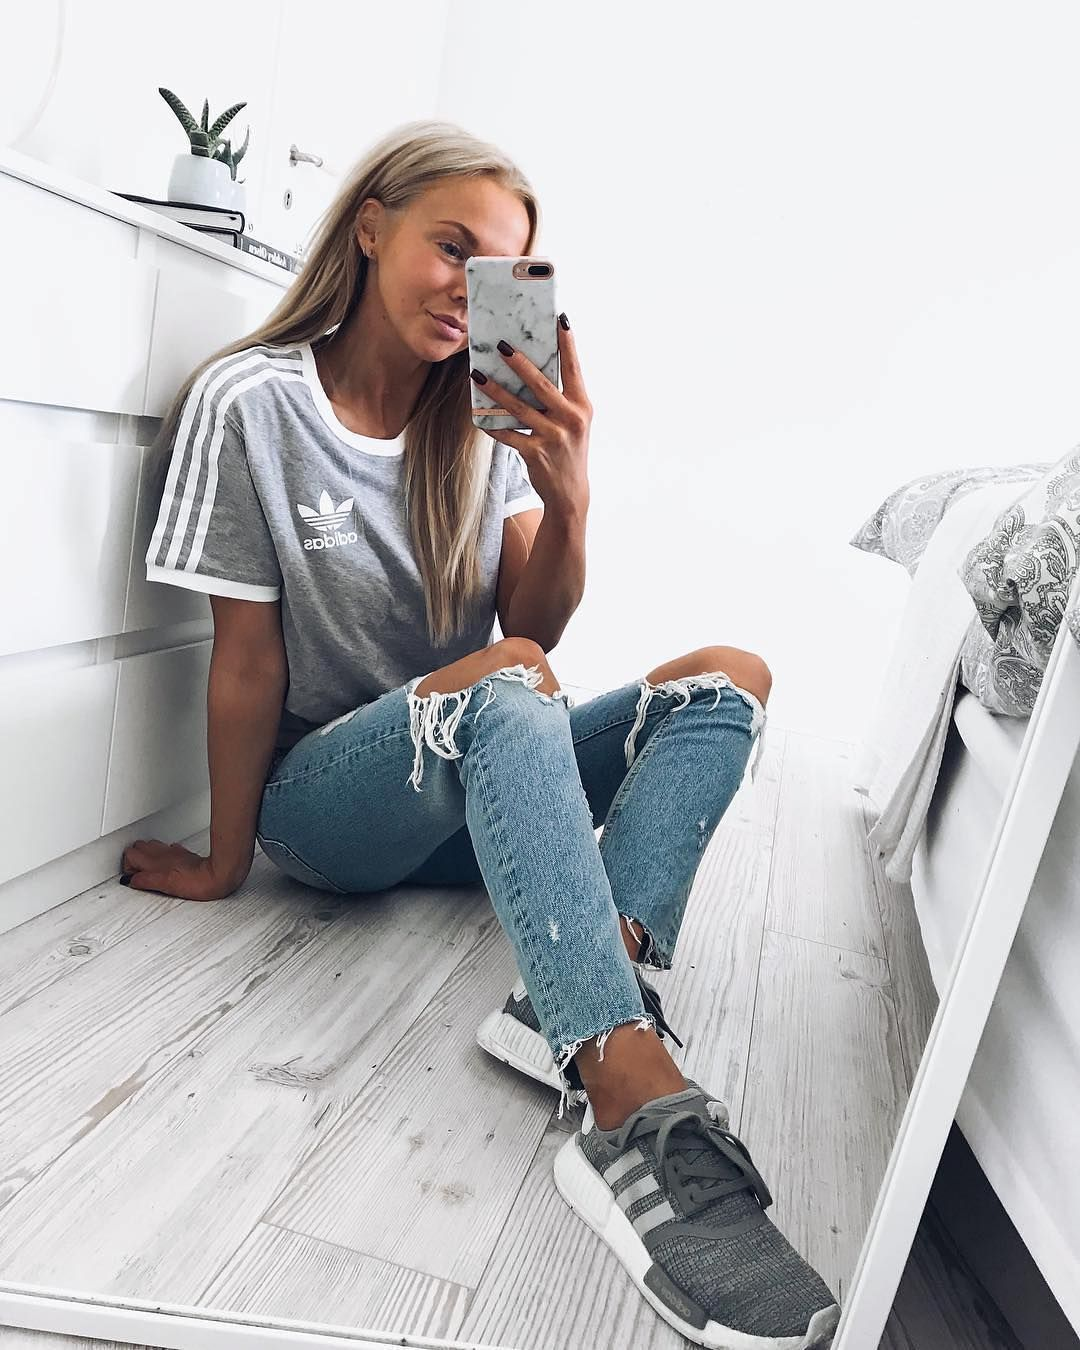 Sneaker outfits for women – the warmer days are finally here and it's time for a casual sneaker outfit for the city. You want to …